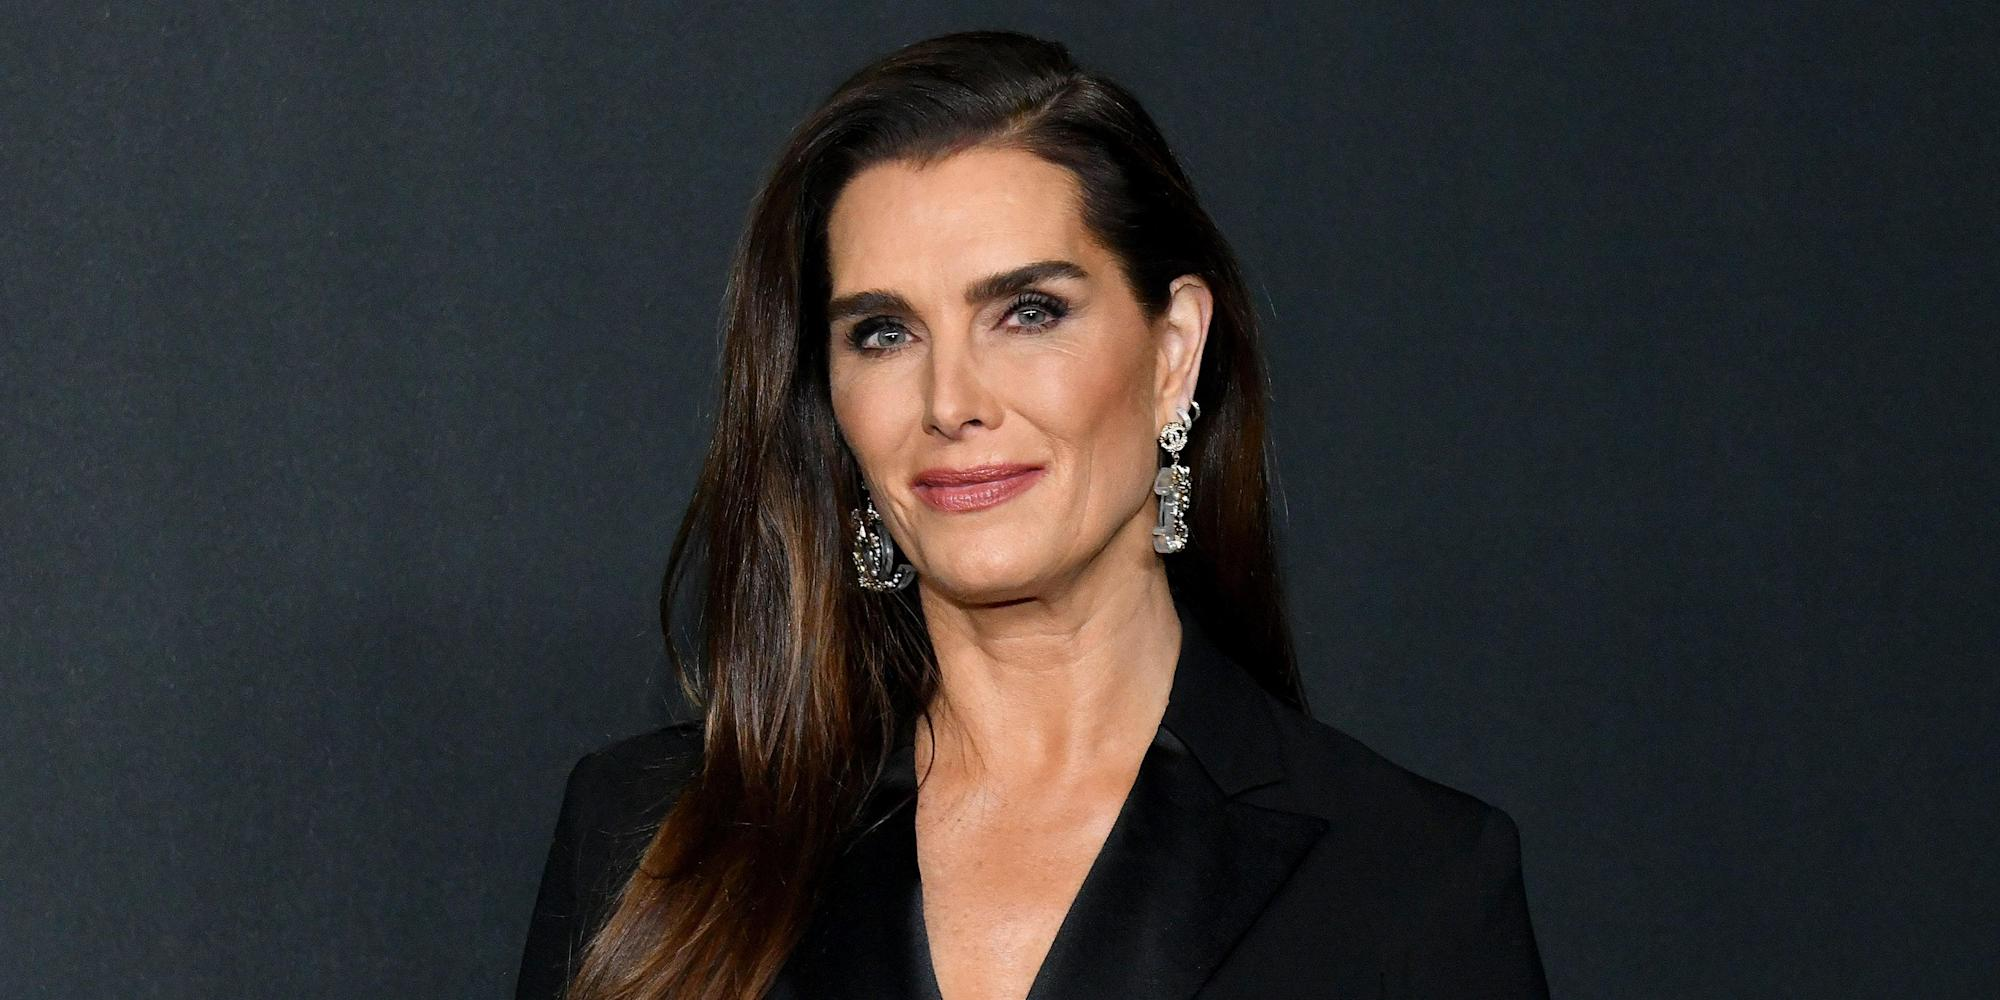 Brooke Shields Shares Recovery Photos After Her